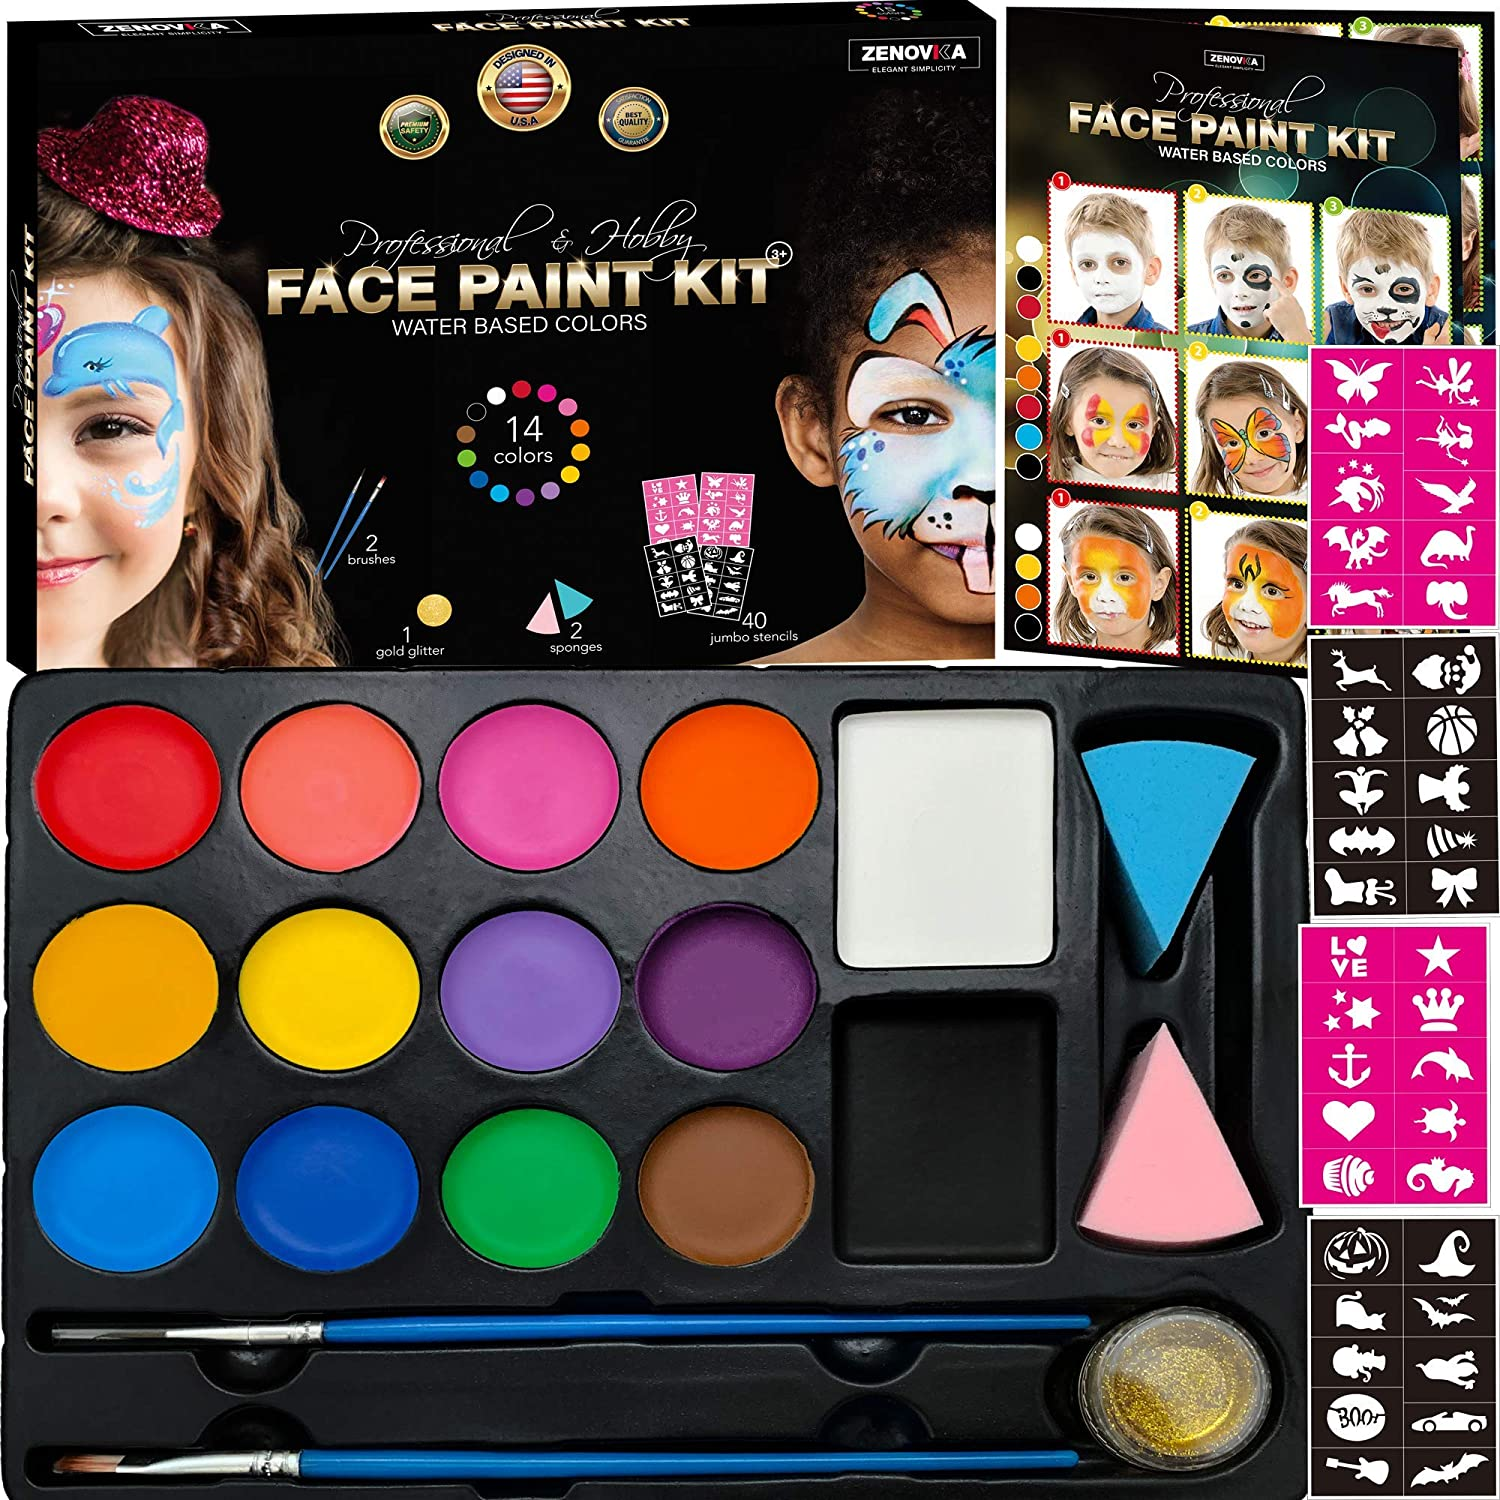 Face Paint Kit for Kids - 14 Professional Face Paints, 40 Jumbo Stencils, 2 Brushes, 2 Sponges, Gold Makeup Loose Glitter - Safe Face and Body Painting Kit for Sensitive Skin, Face Painting Book